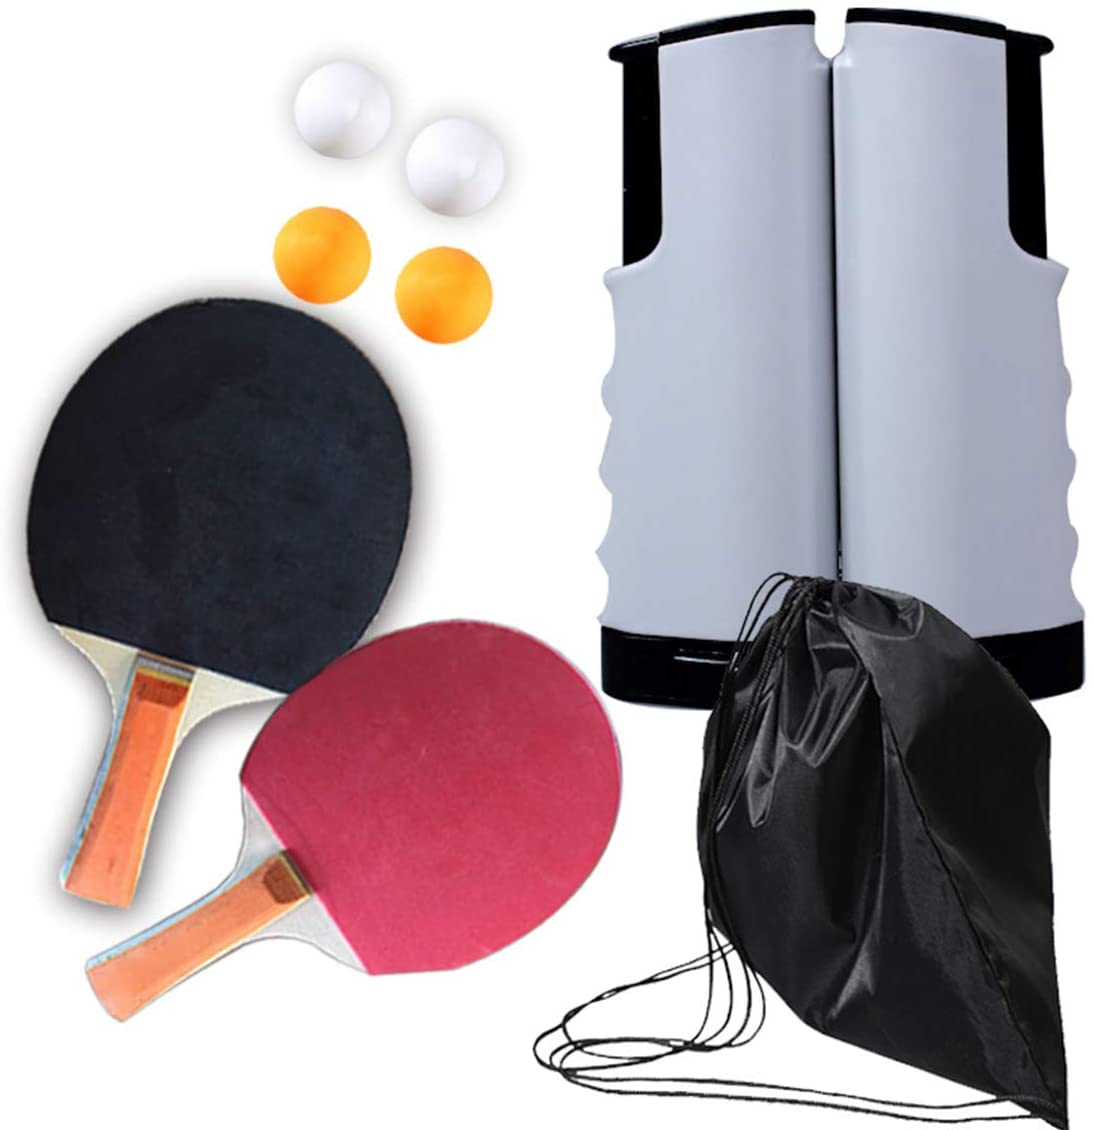 HelloCreate Table Tennis Racket Telescopic Net Rack Set, Portable Table Tennis Set Retractable Table Tennis Net Rack + 2 Table Tennis Bats + 4 Balls for Home Office